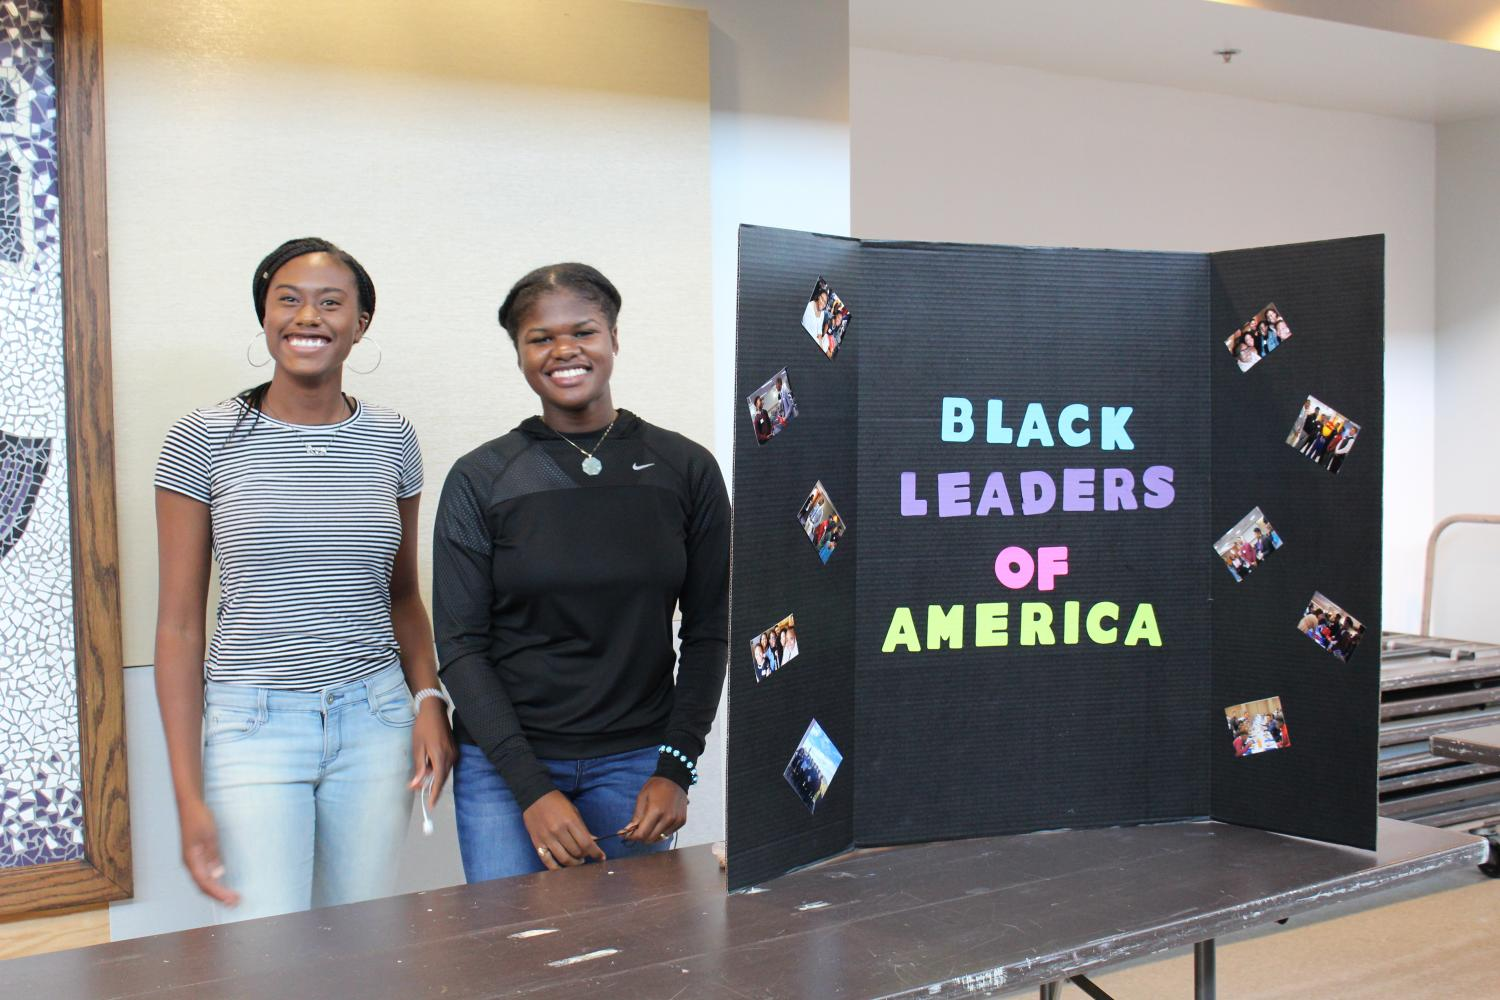 Two+students+involved+with+Black+Leaders+of+America+set+up+a+display+to+encourage+others+to+sign+up+for+the+organization.